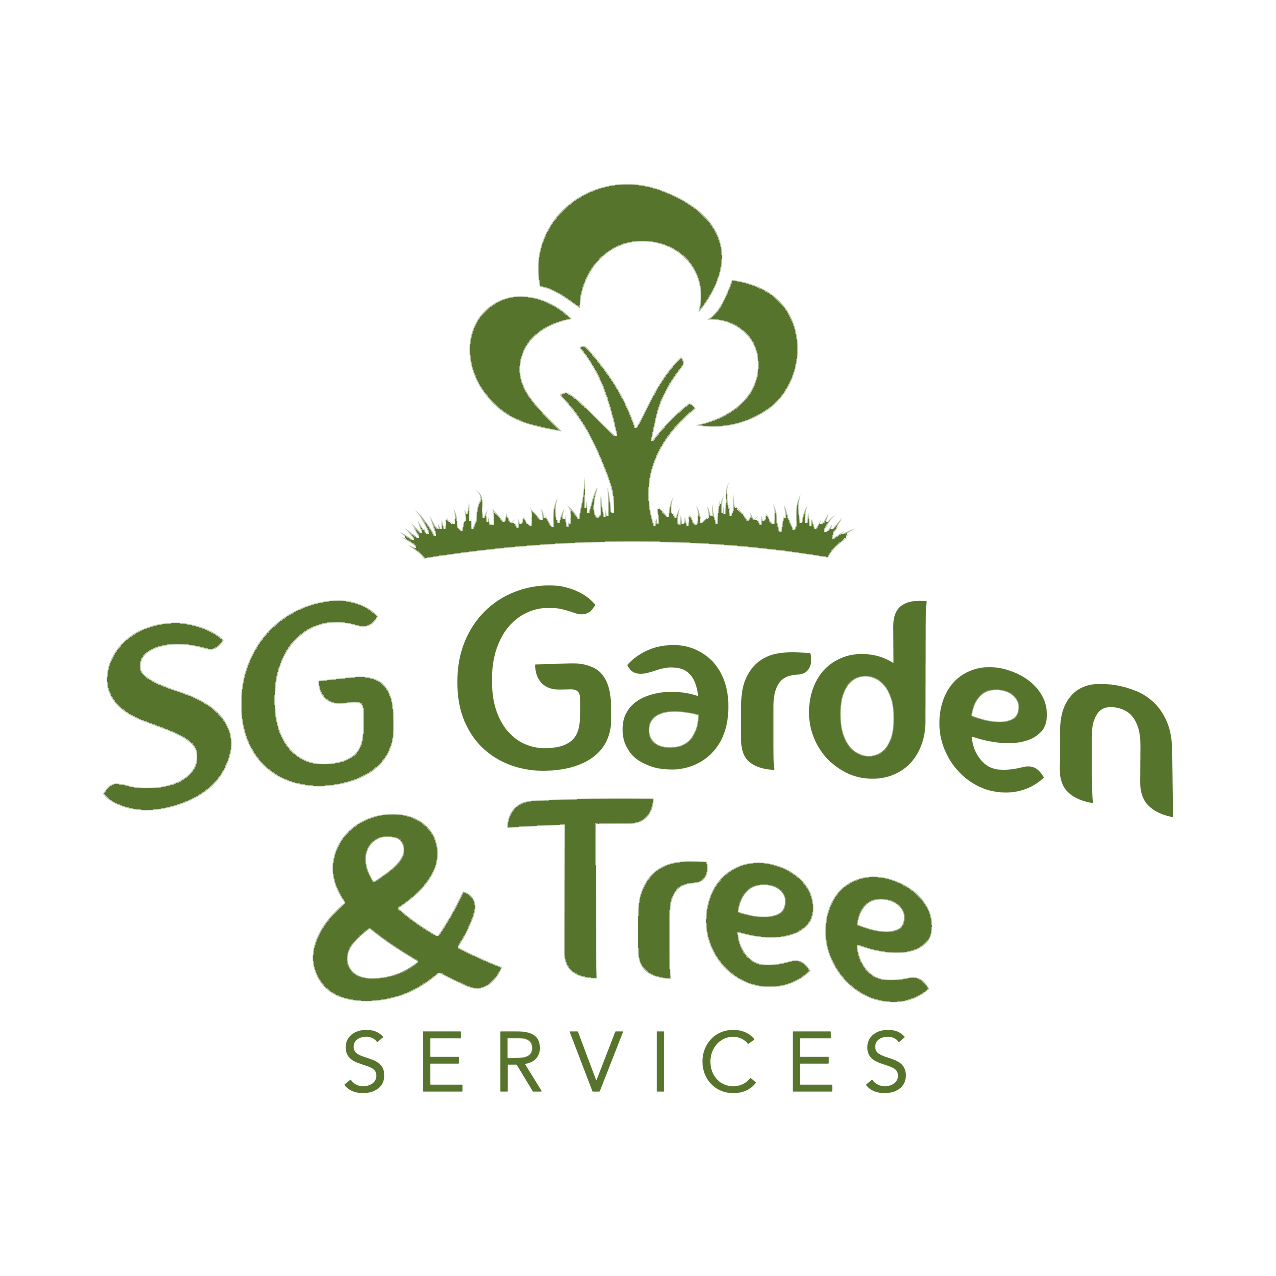 Sg garden tree services isle of wight for Tree and garden services